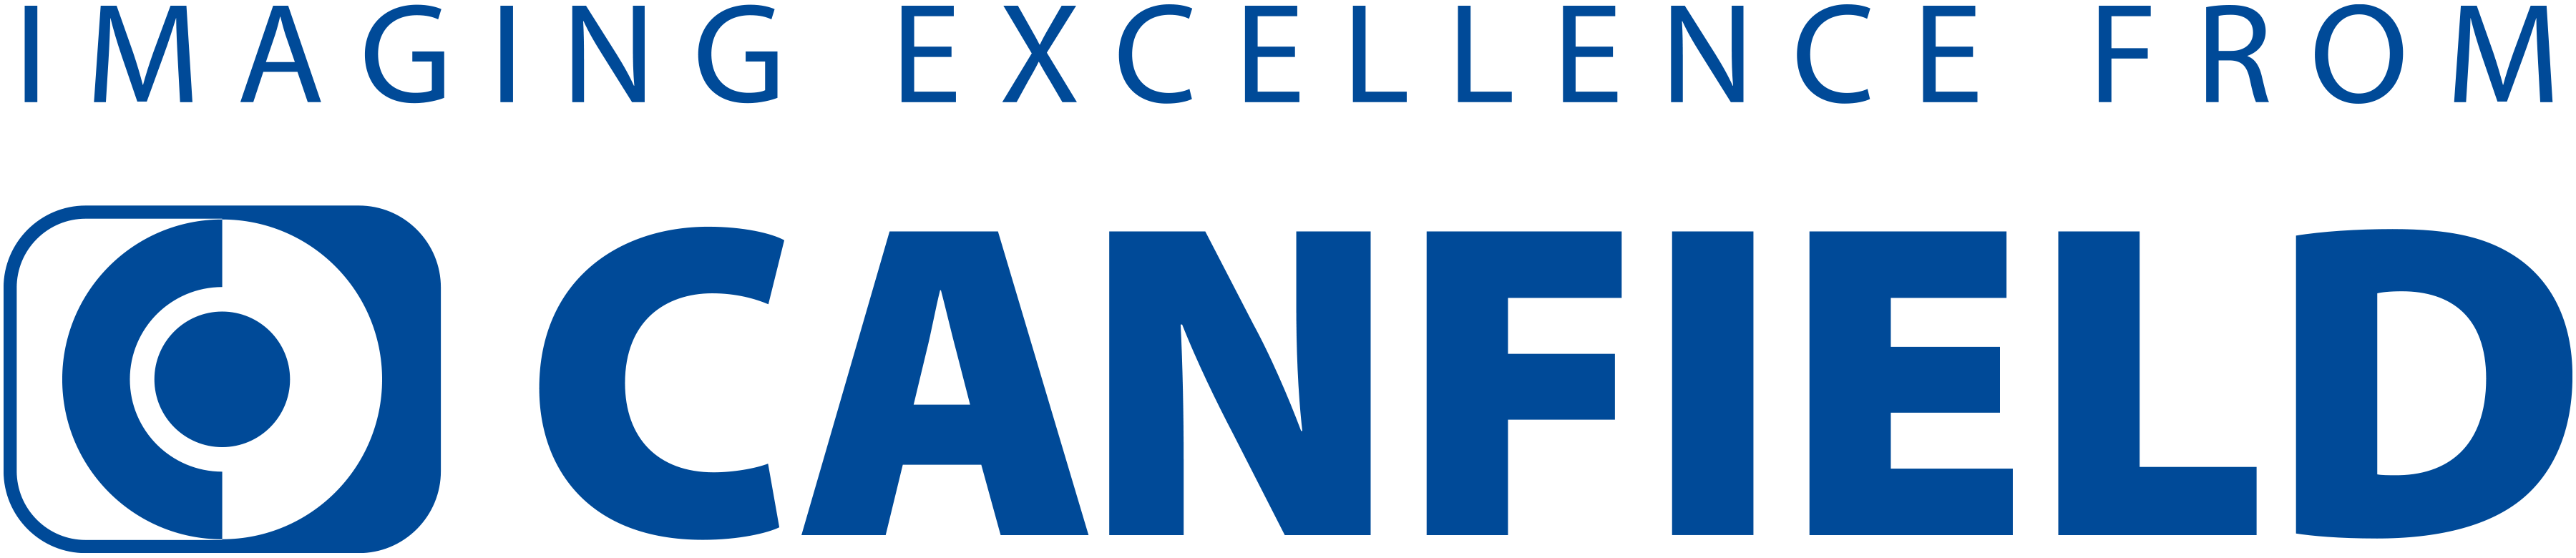 CANFIELD logo blue RGB 600 ppi.png (91 KB)